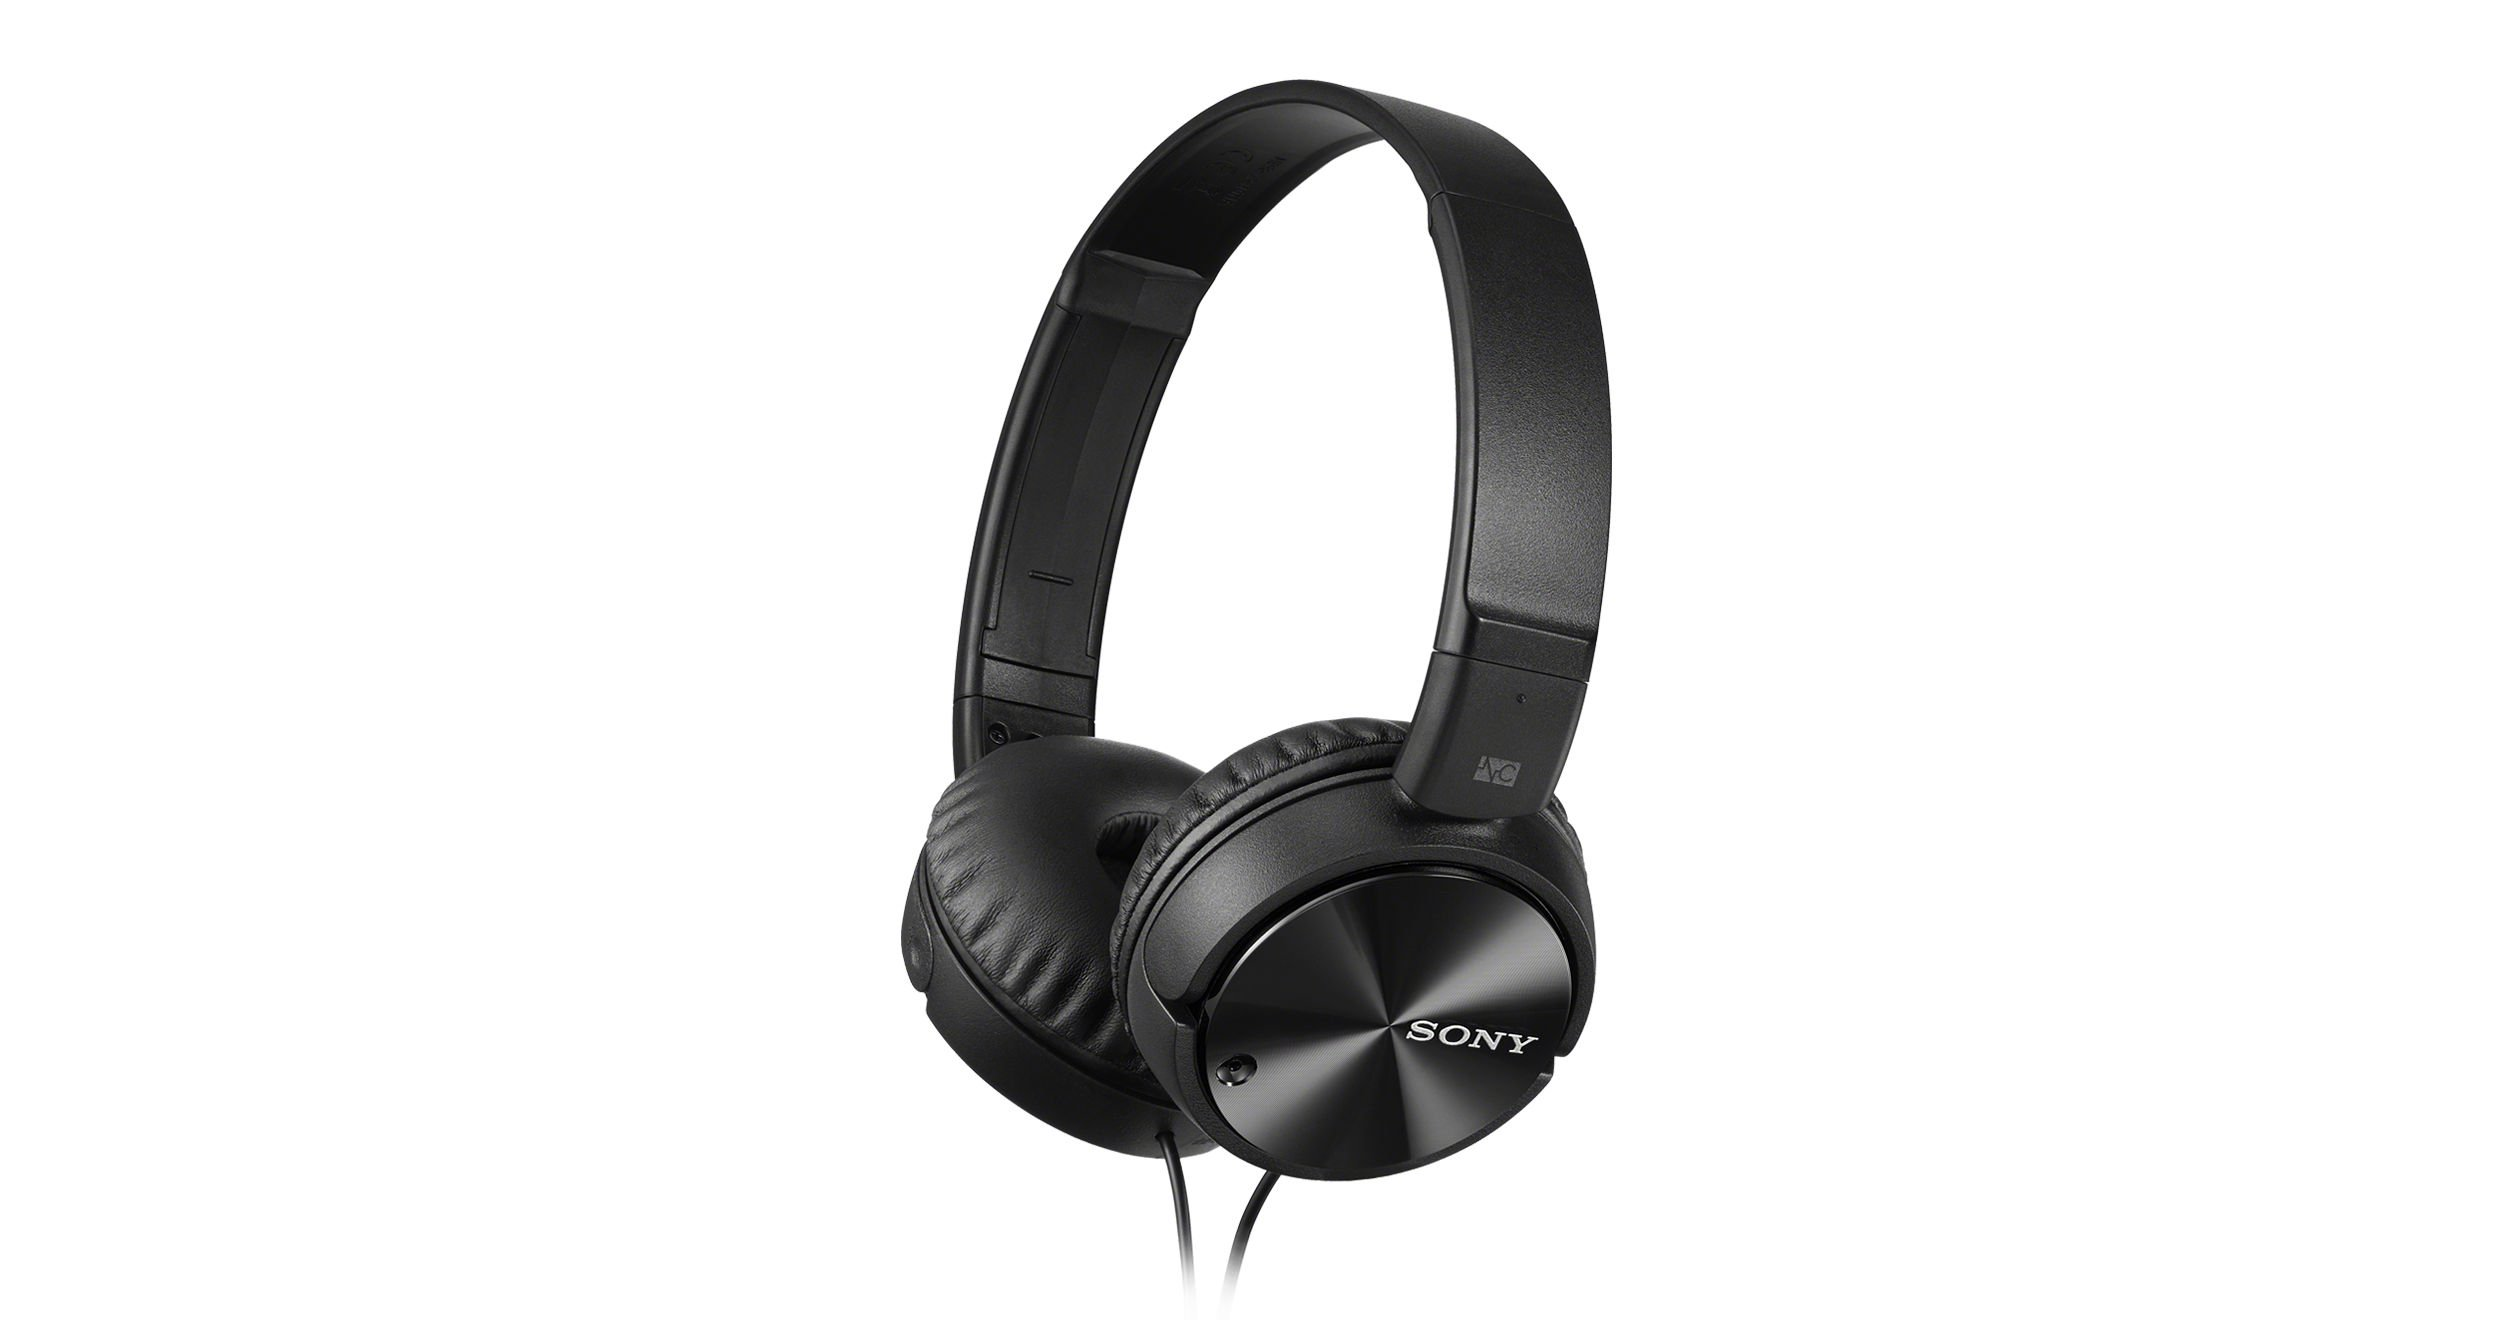 Sony High Clarity Lightweight On Ear Headphones w/Noise Canceling (Certified Refurbished) (MD-X110, Black)